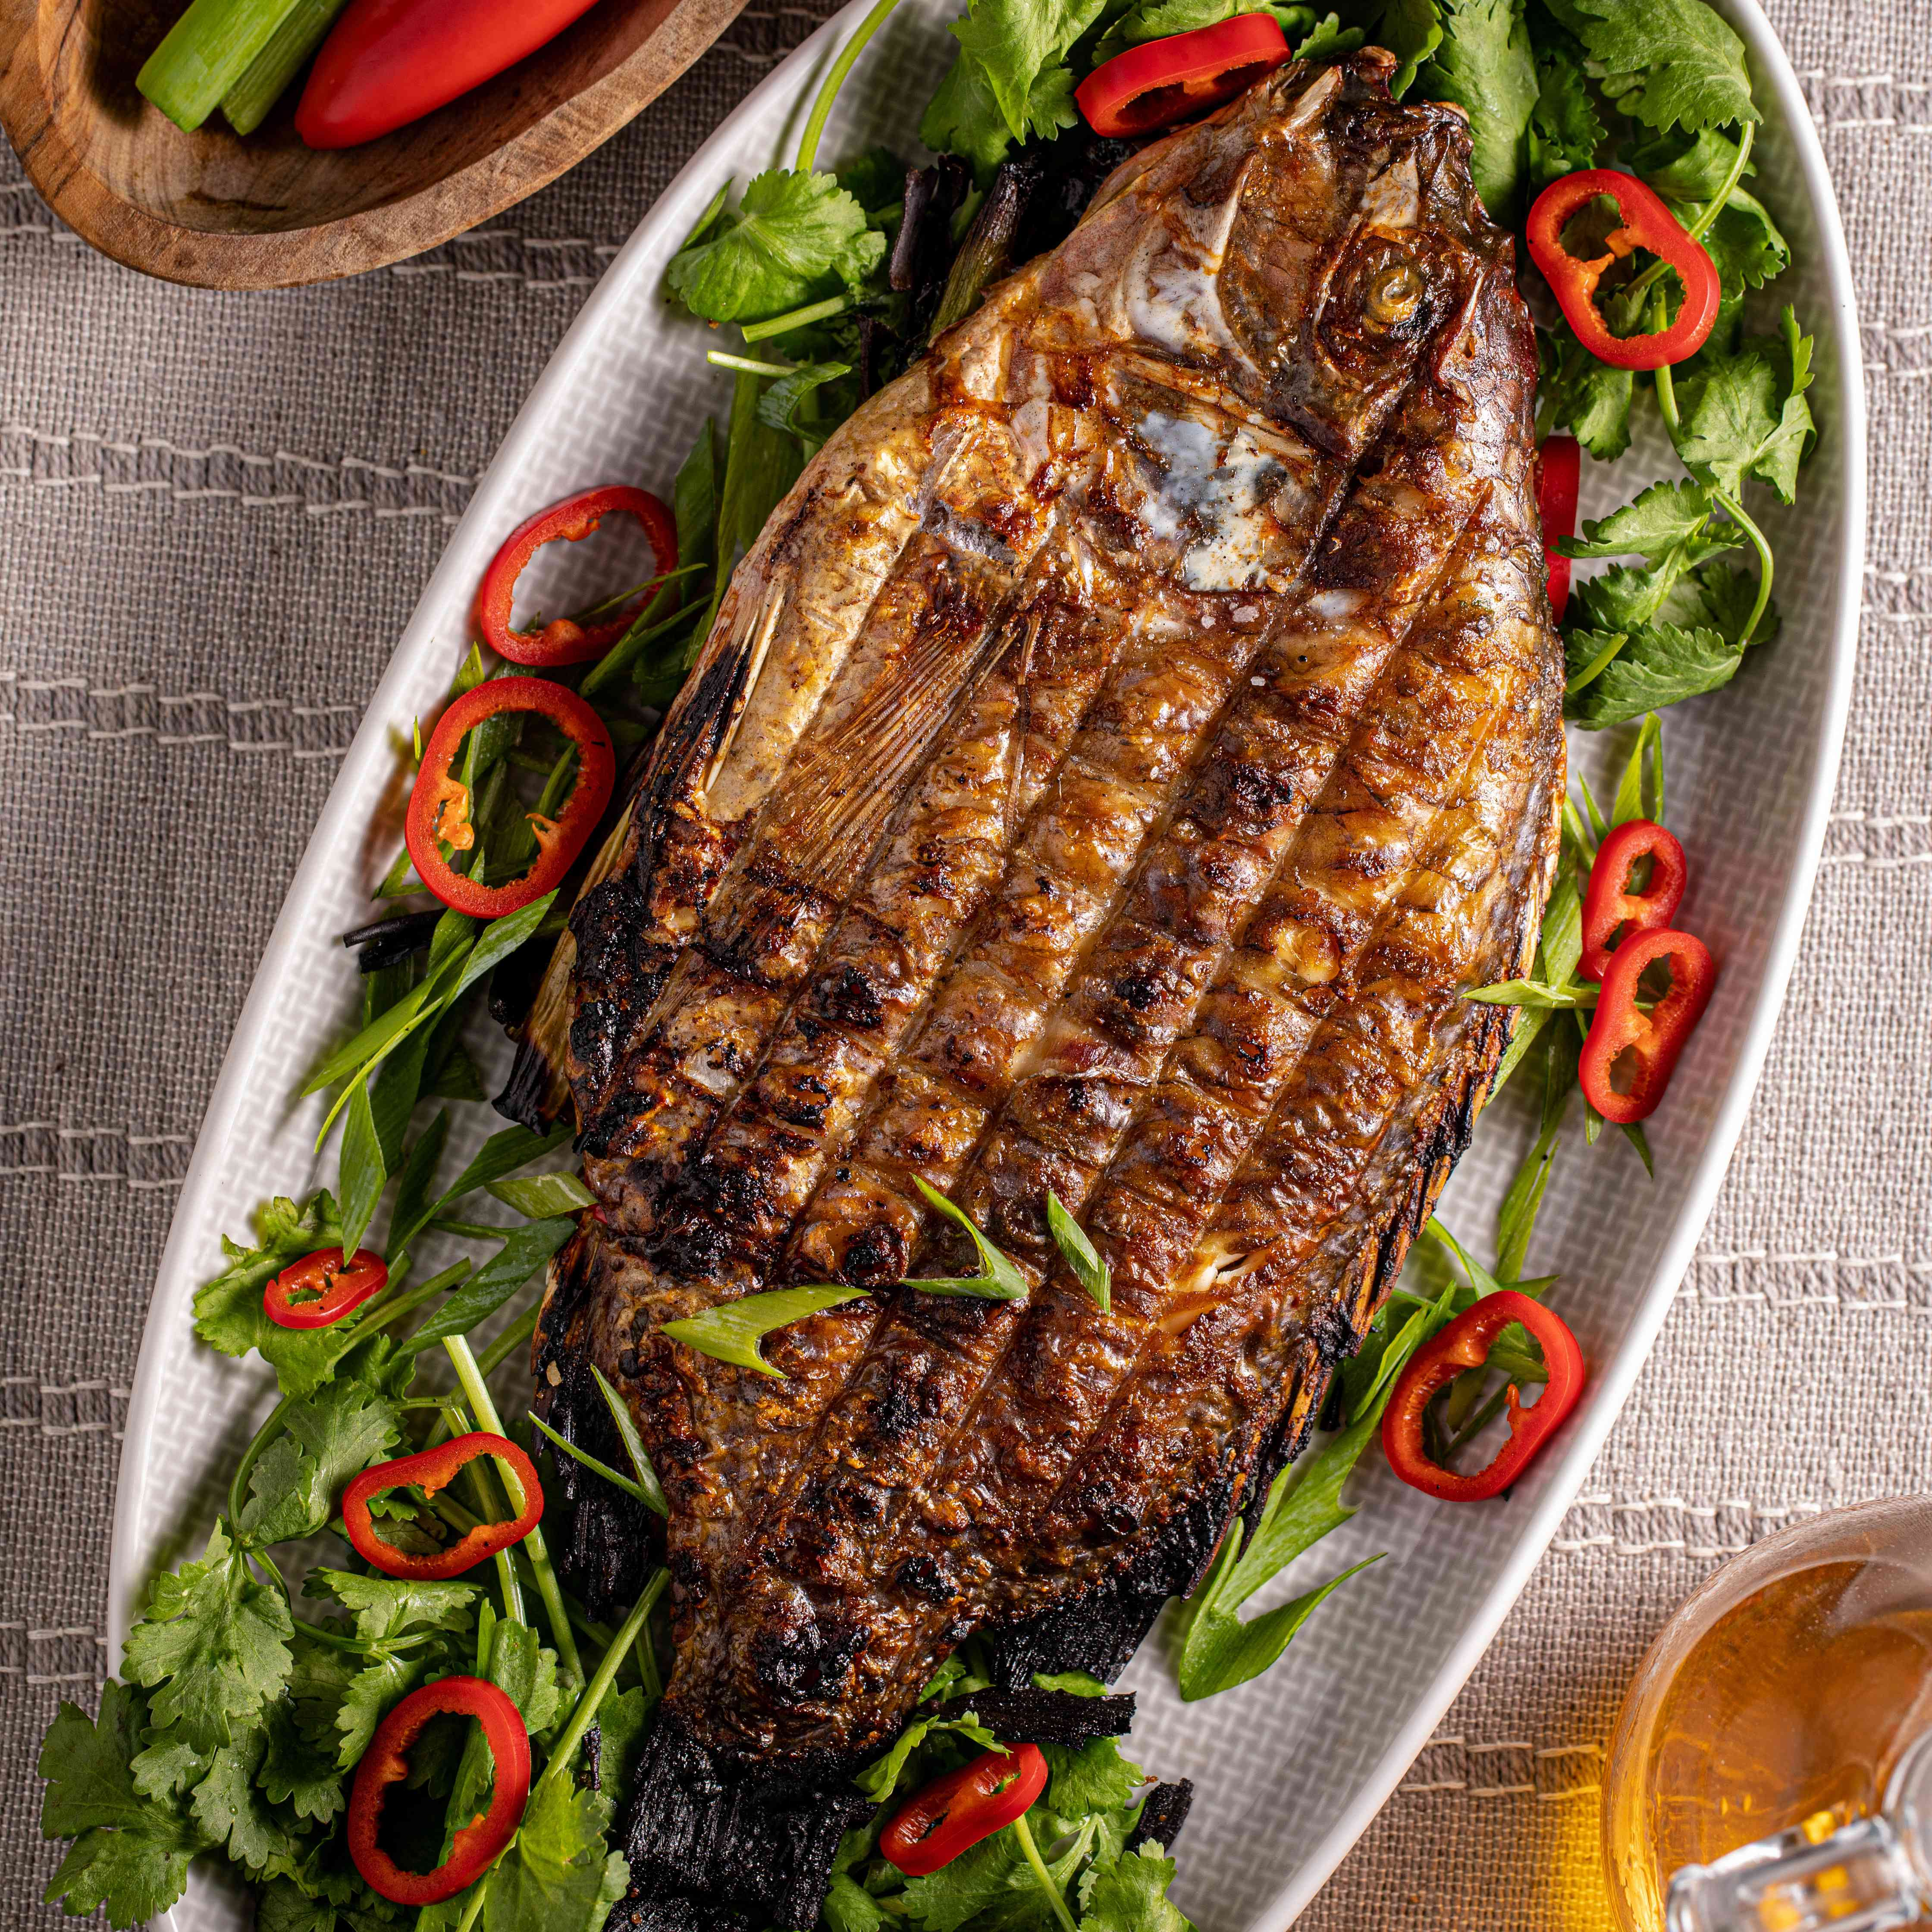 Overhead view of grilled fish stuffed with cilantro and fresno chilies on a platter.